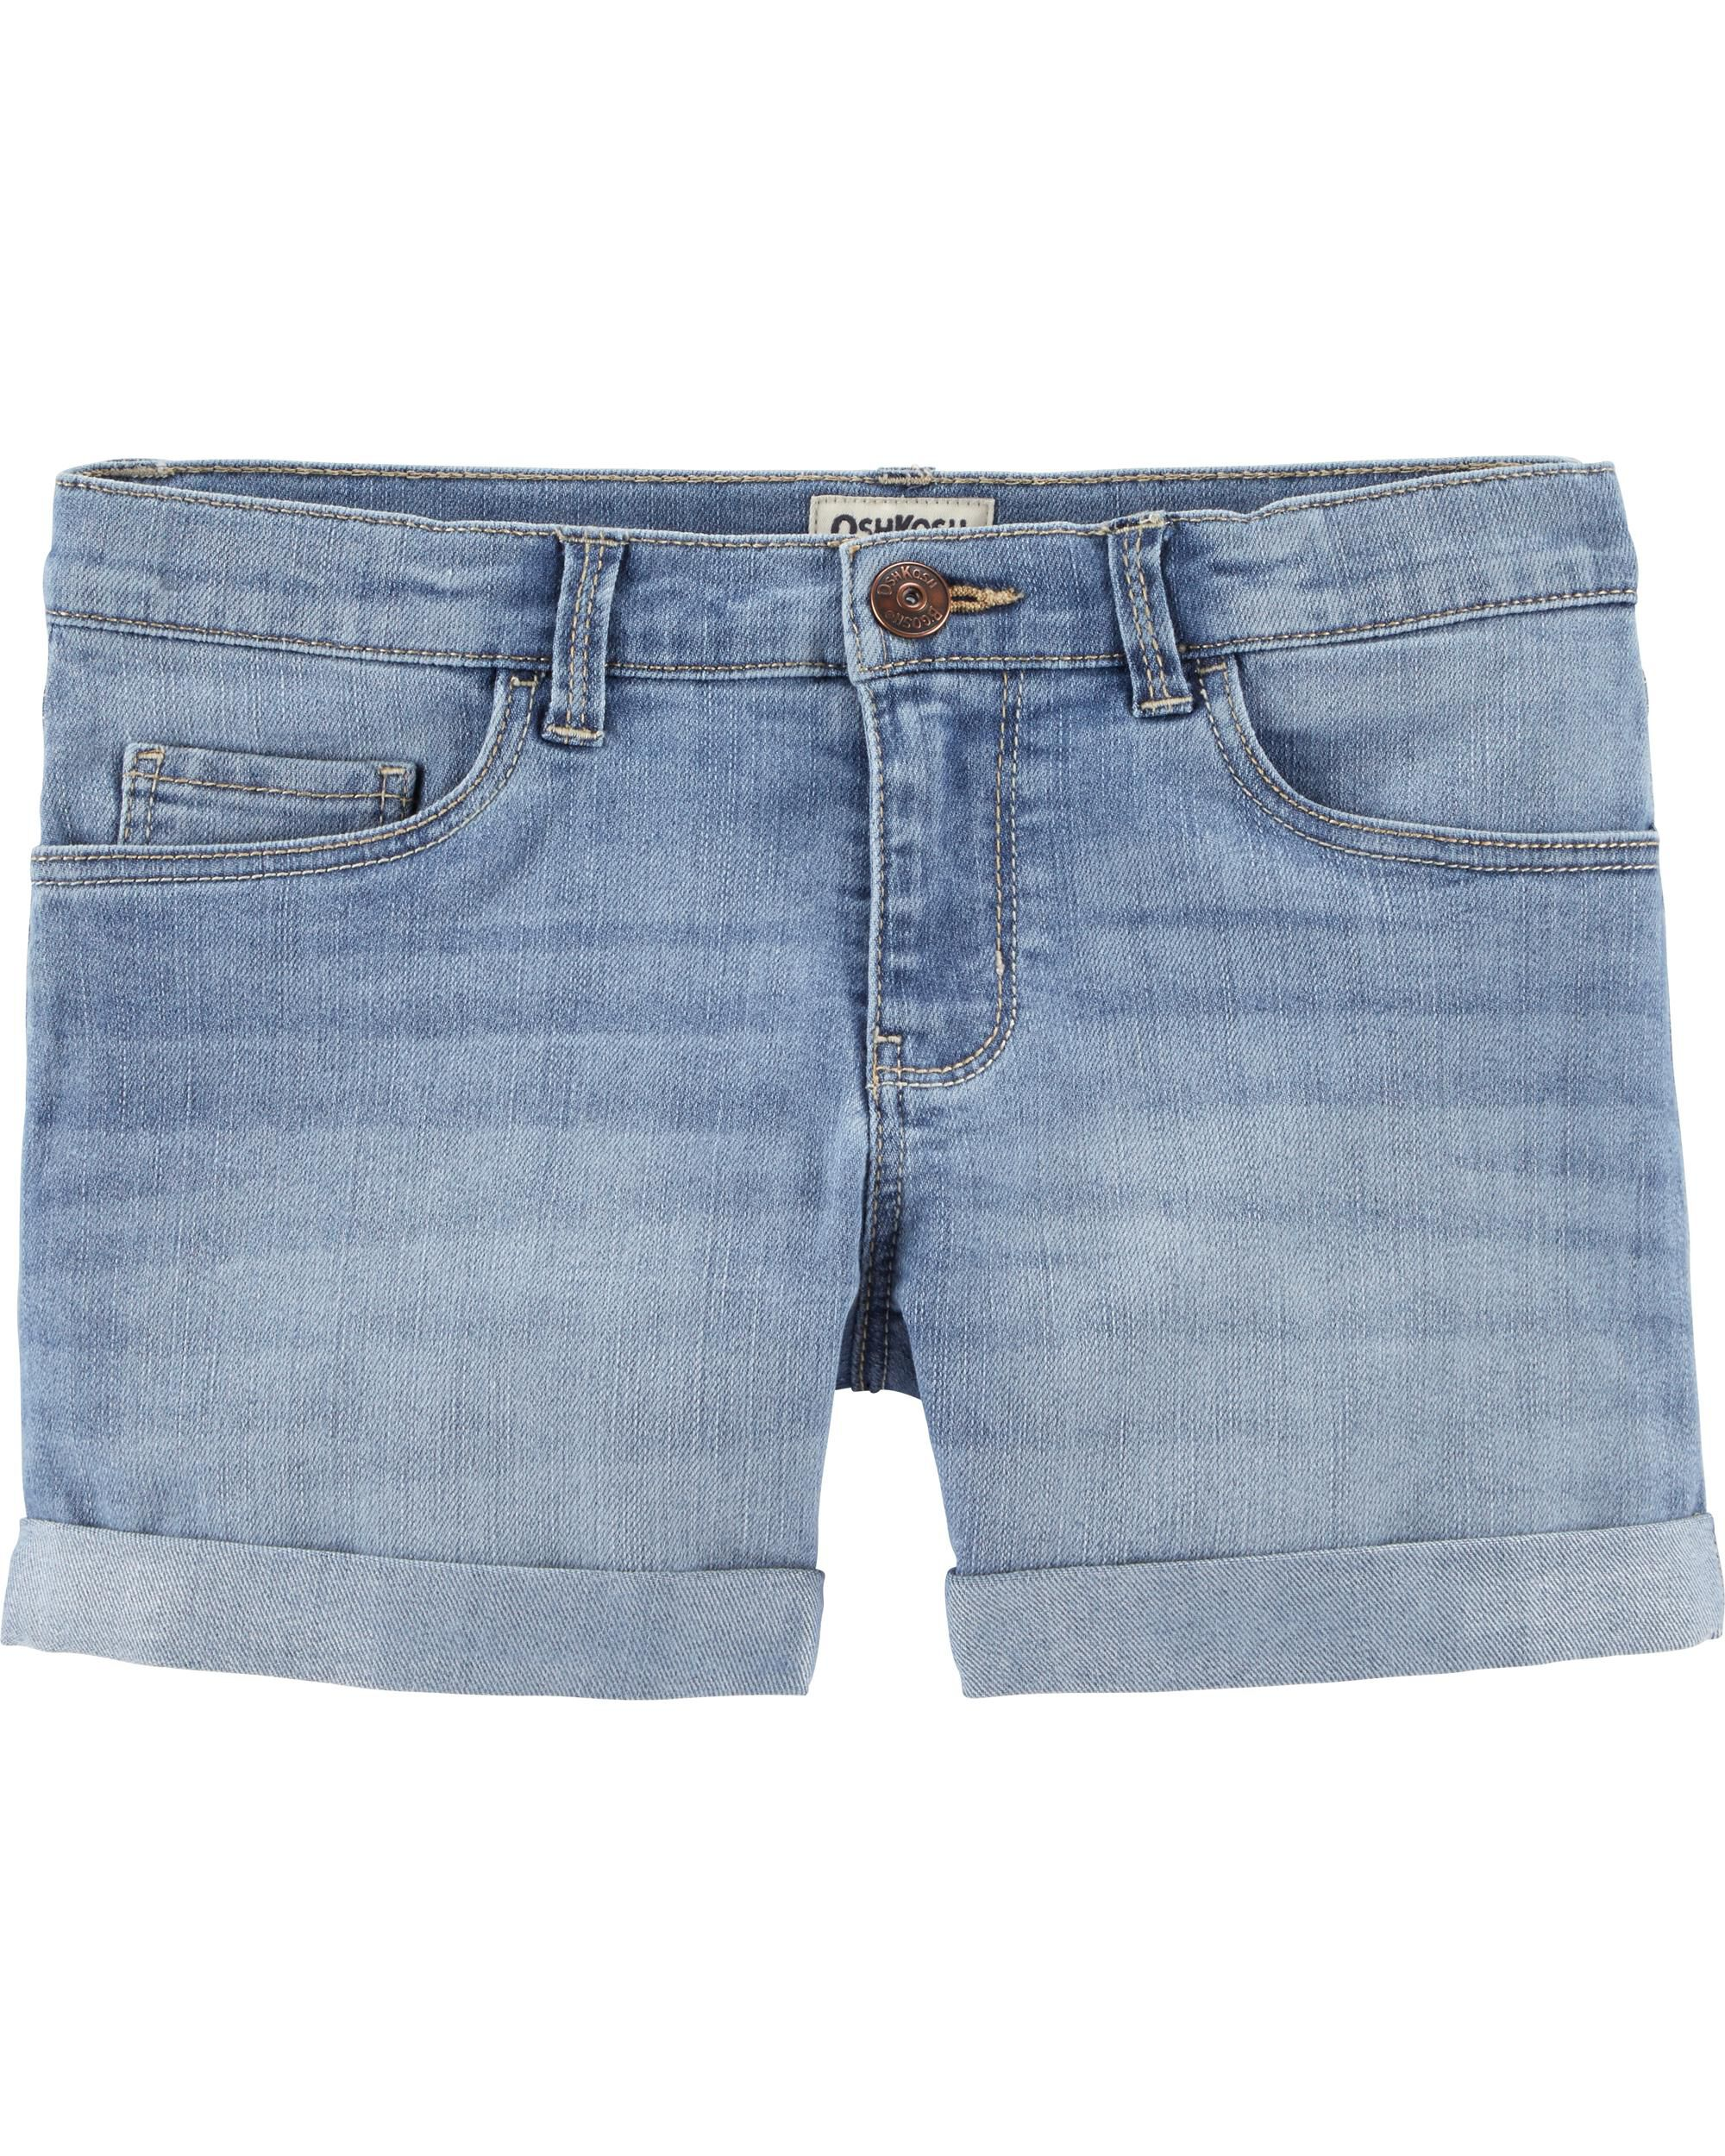 *Clearance*  Denim Shorts - Sky Blue Wash